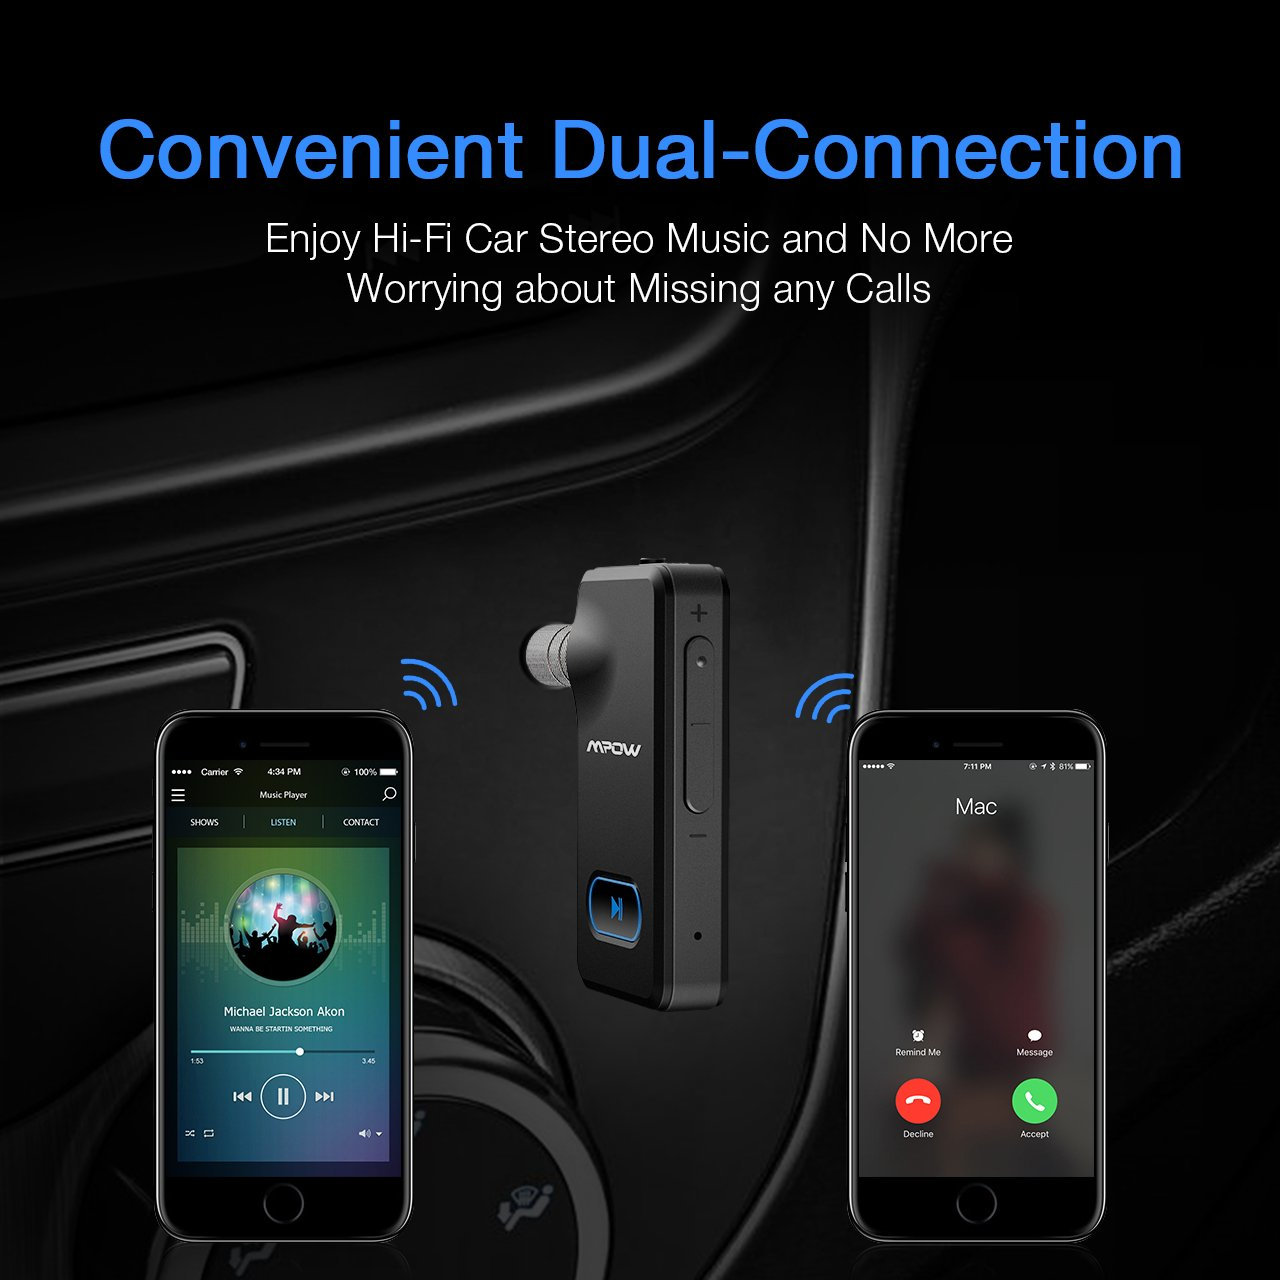 Mpow Aux Blueooth Adapter 3.5mm, Bluetooth Receiver w/Quick Charging 5-Min for 2 Hours Hands-free Calling, Wireless Bluetooth Car Adapter with One-Key On/Off Button, Bluetooth Car Kits for Hi-Fi Music by Mpow (Image #6)